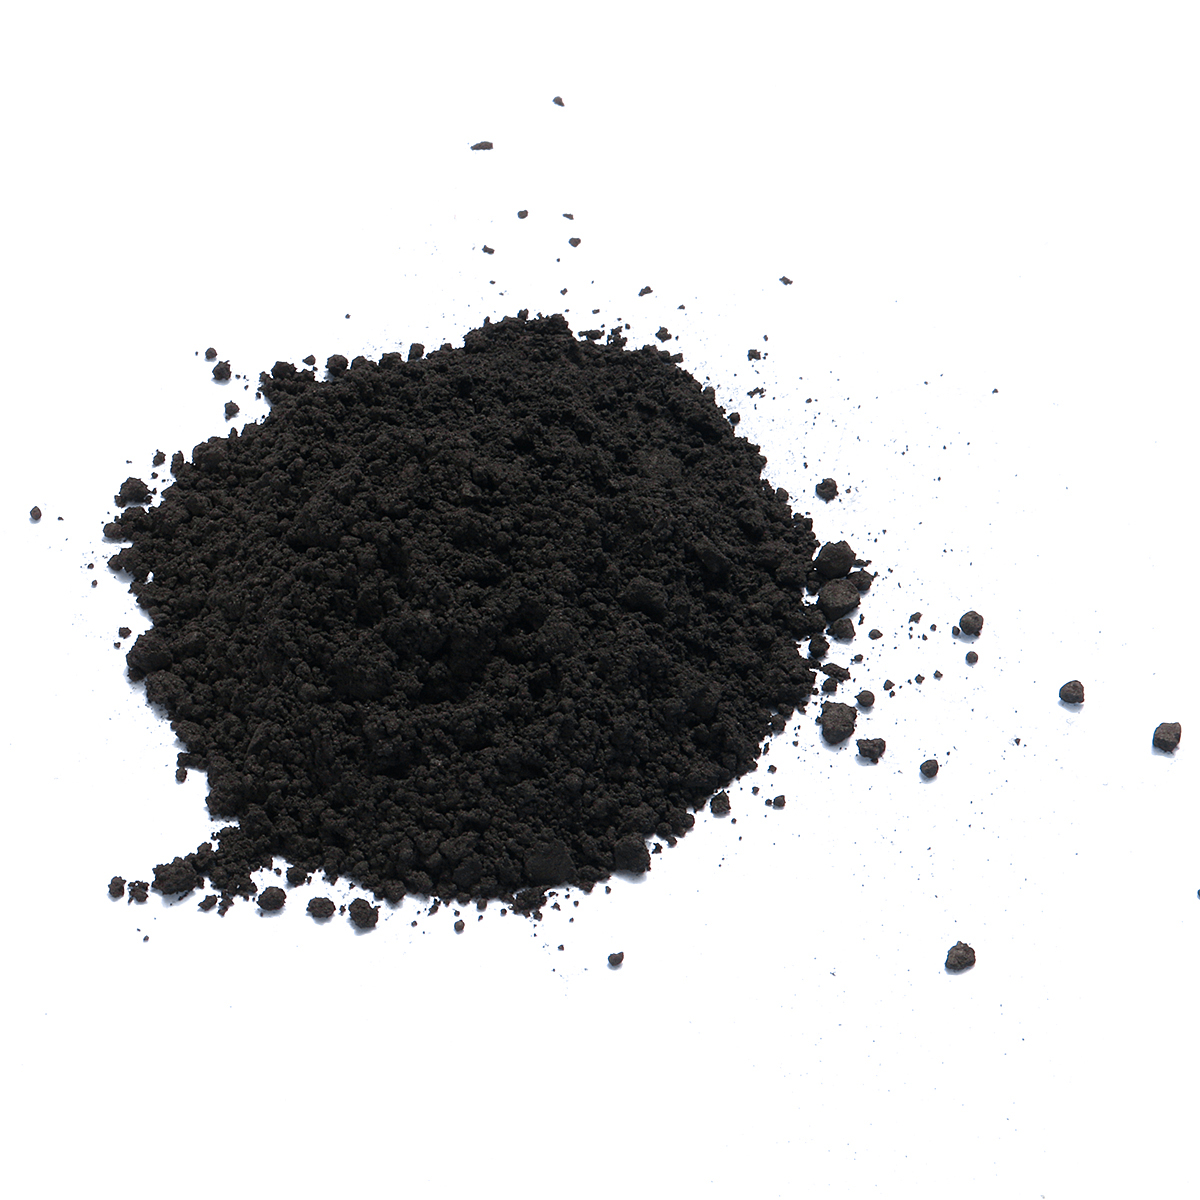 350g Black Graphite Powder 5 Micron Ultra Fine 99.9% Pure Military Grade